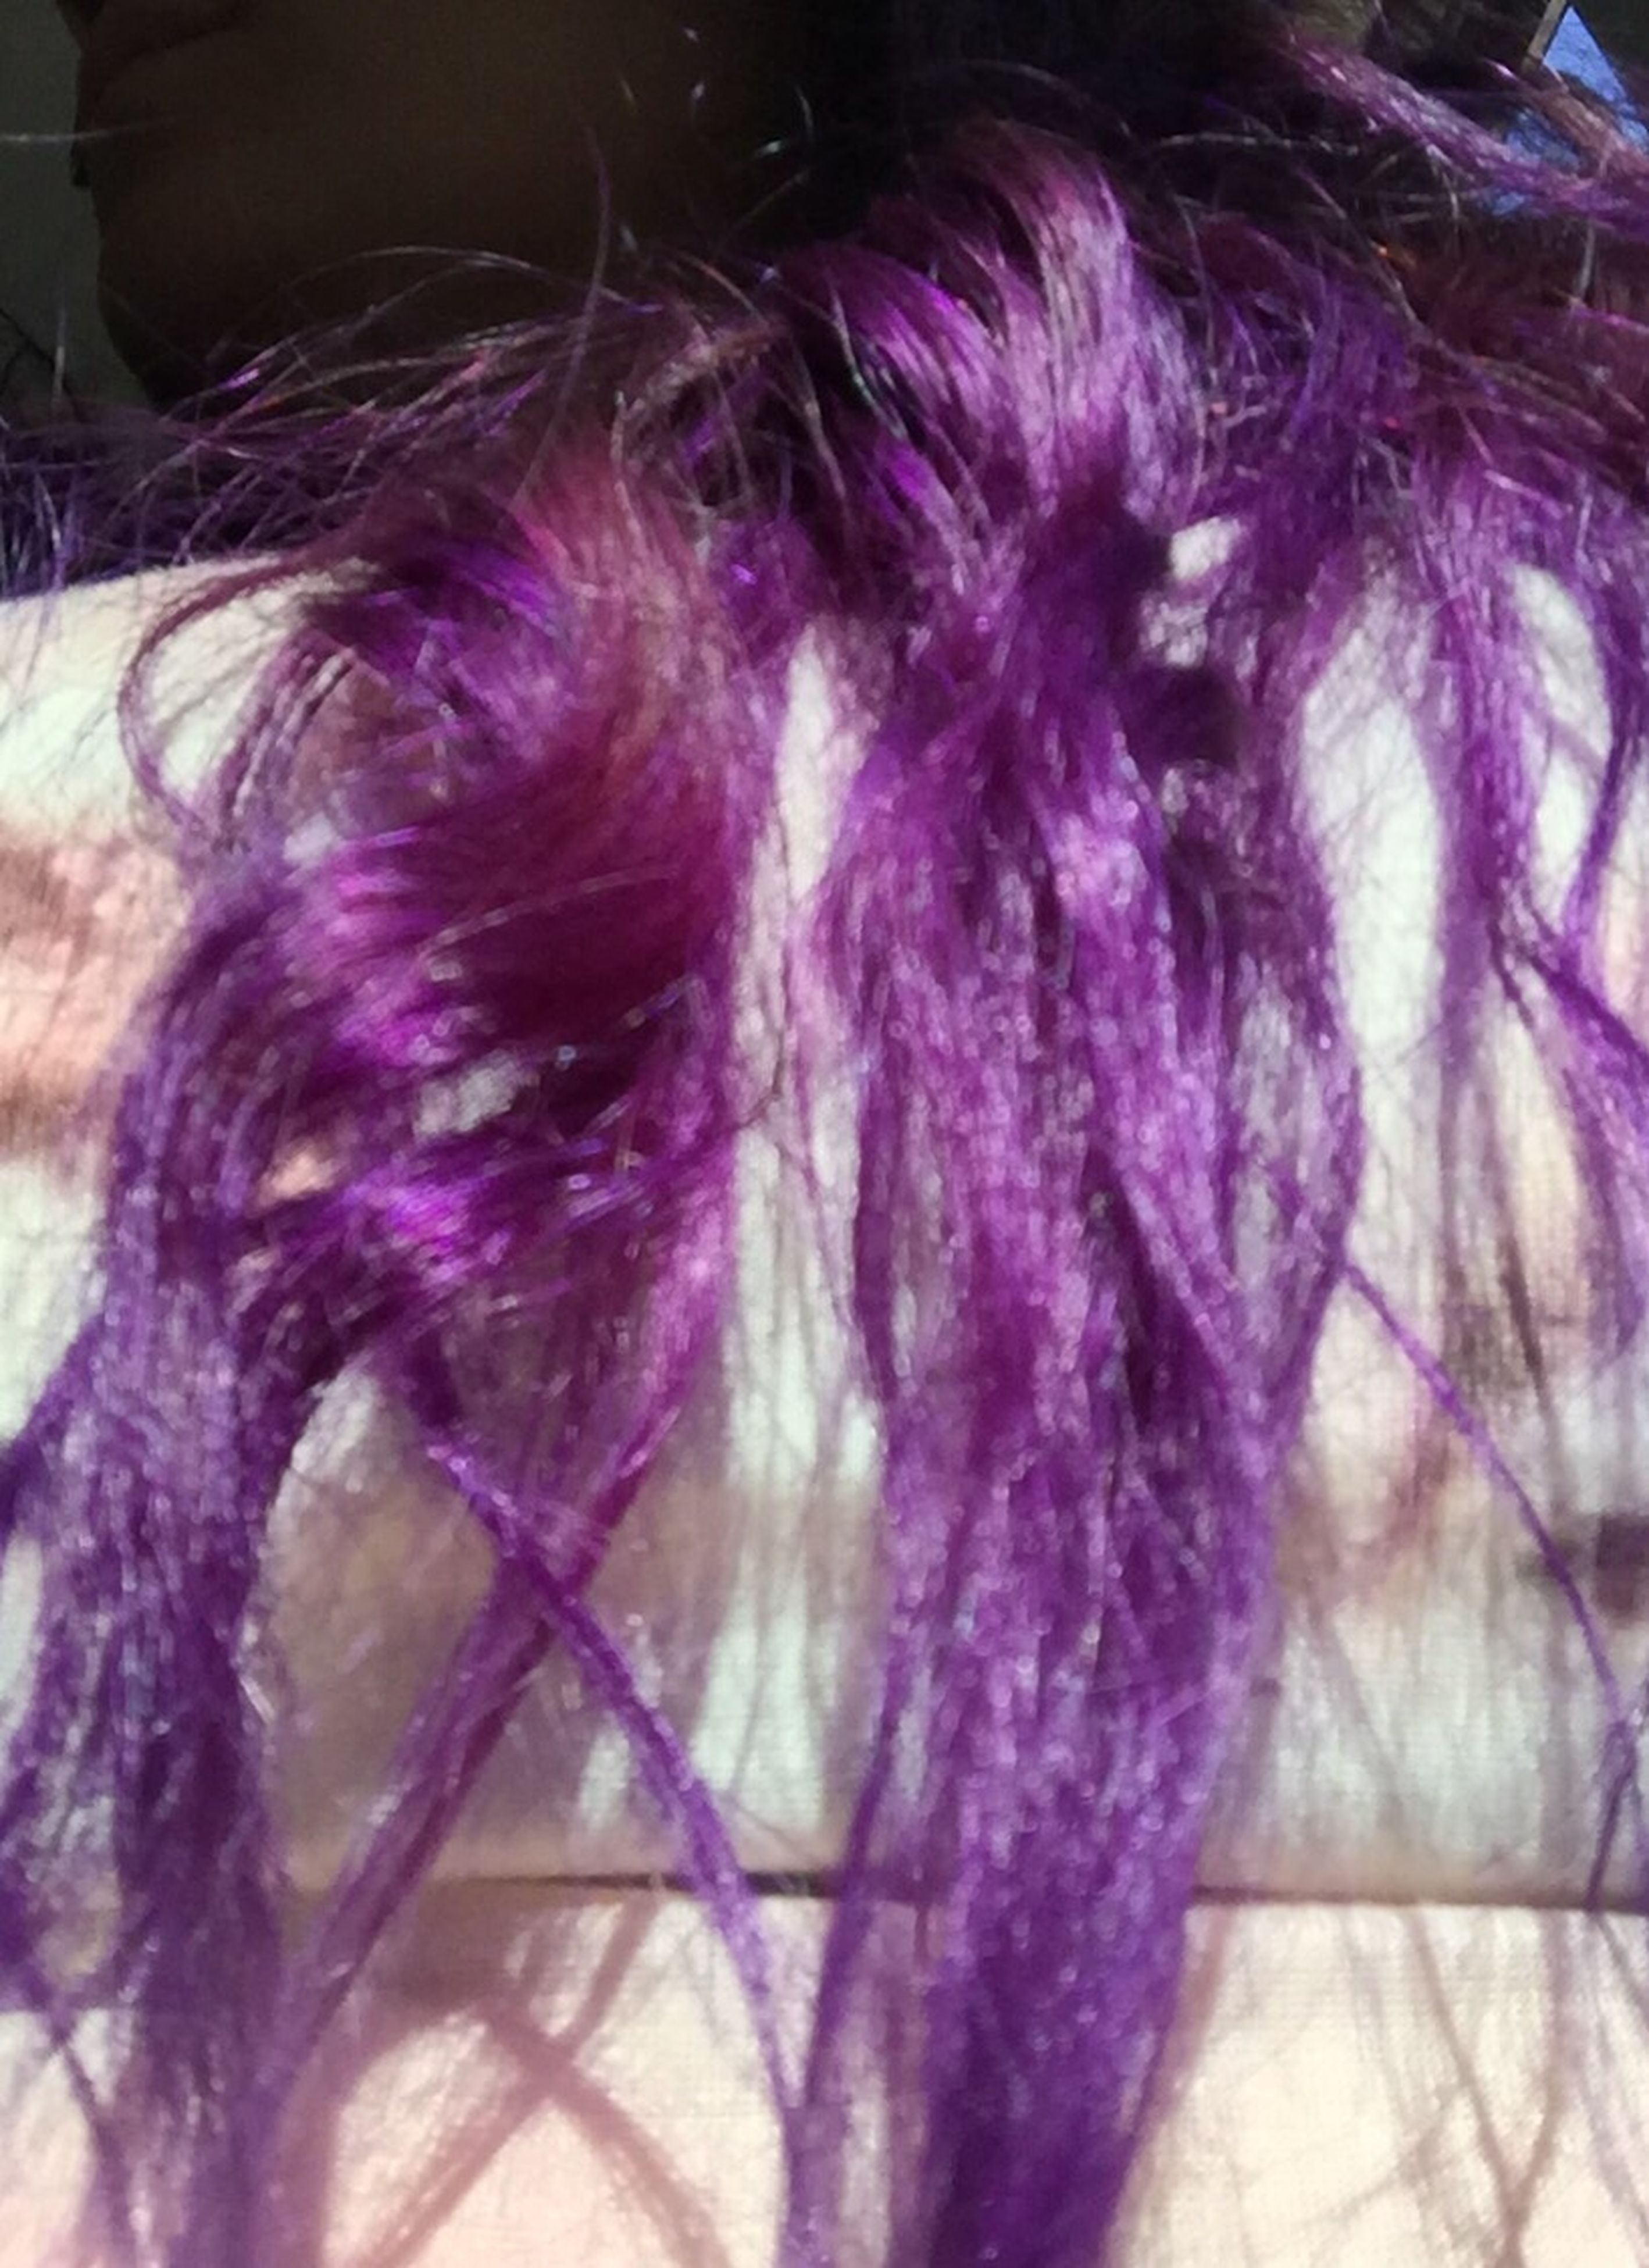 human hair, purple, one person, indoors, close-up, real people, day, people